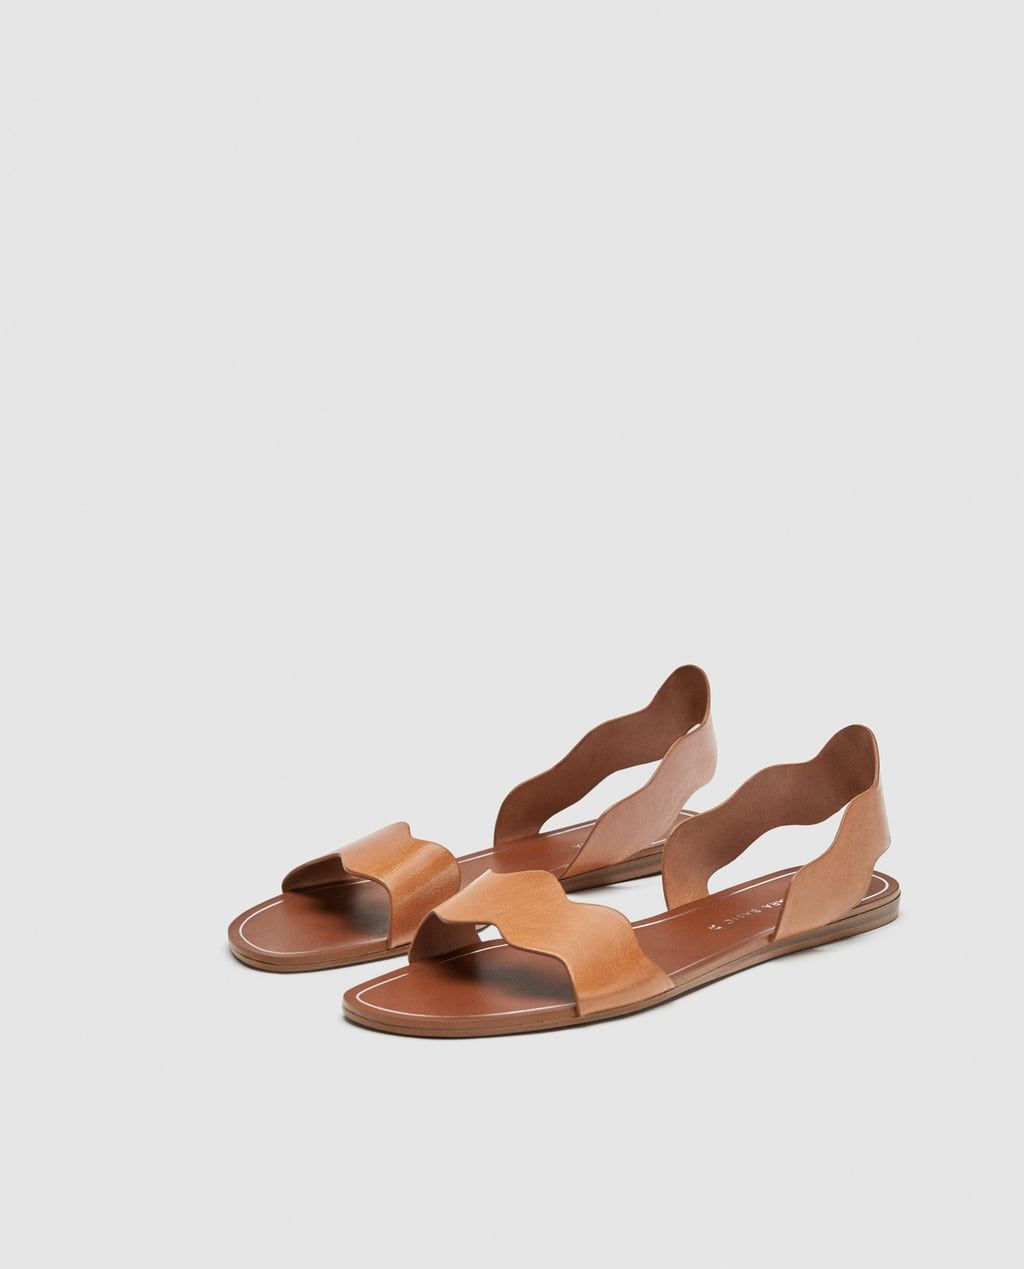 9978ca00a04 Image 4 of LEATHER SLIDES WITH WAVY STRAPS from Zara